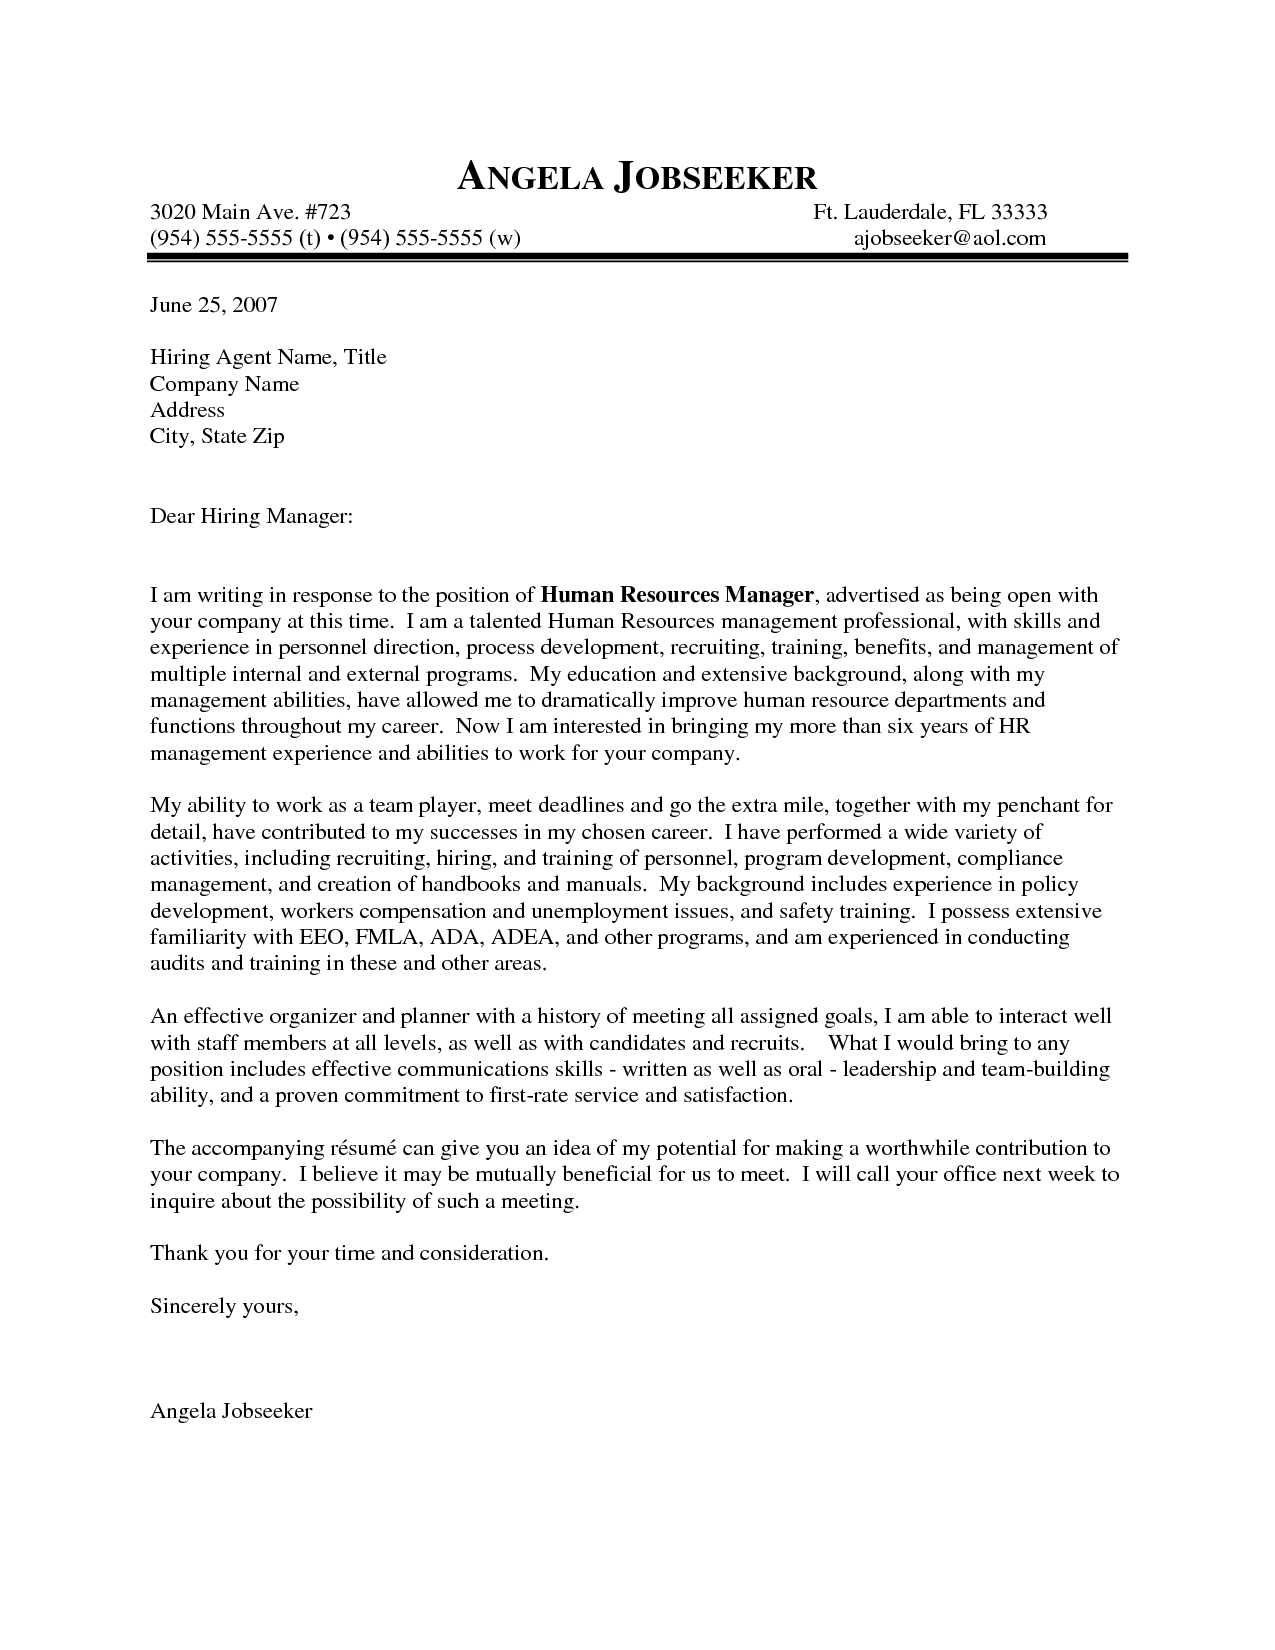 High Quality Outstanding Cover Letter Examples | HR Manager Cover Letter Example Inside Writing A Resume Cover Letter